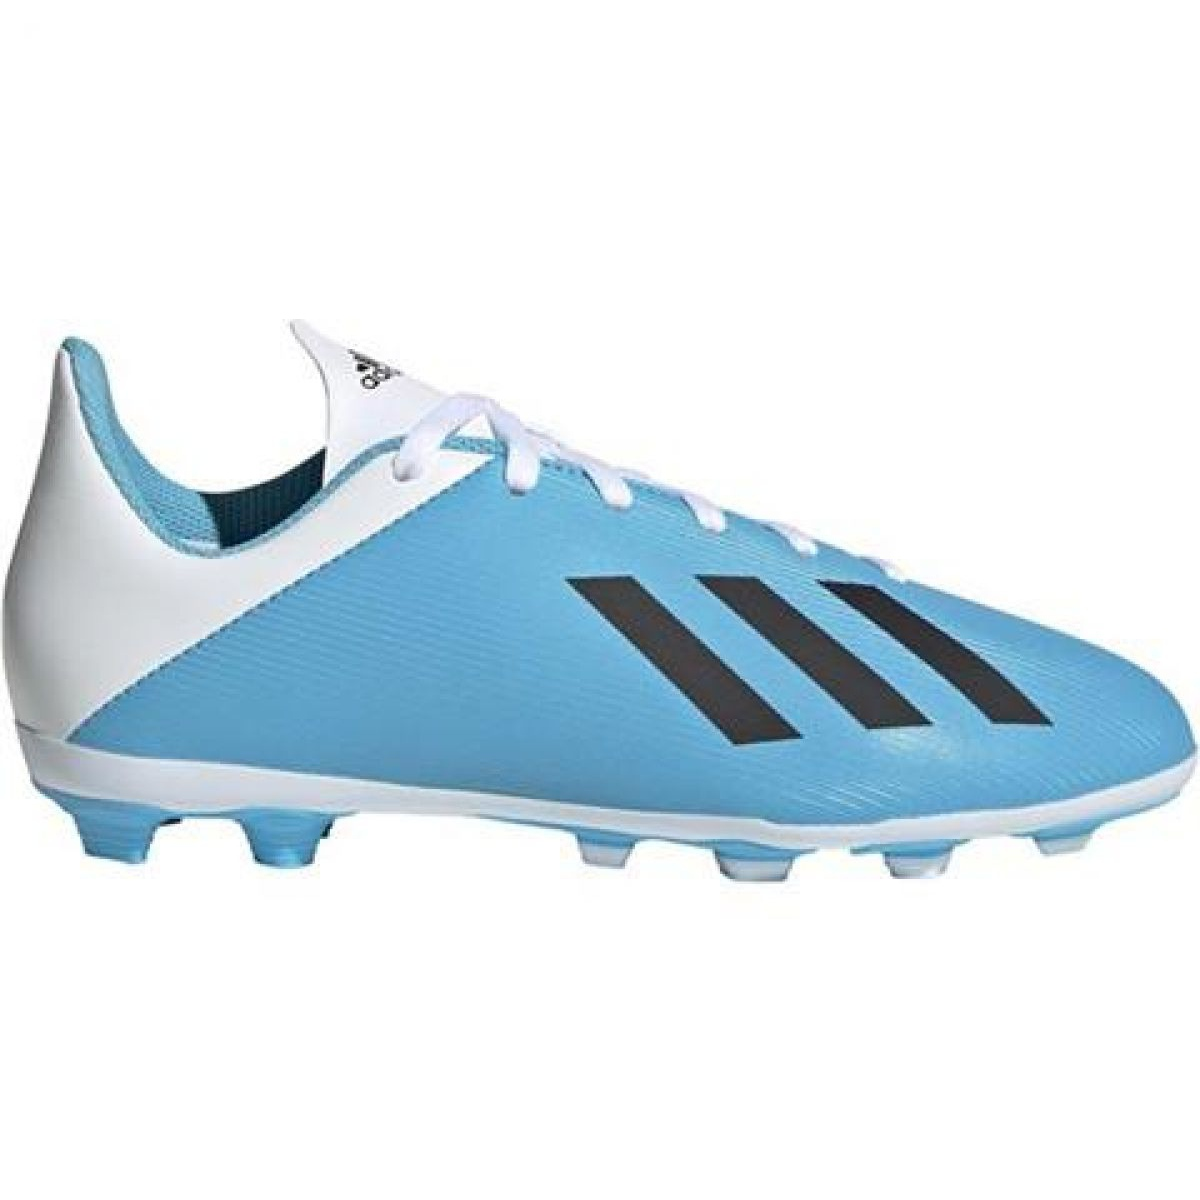 Adidas Predator 19.4 FxG Junior Football Boots